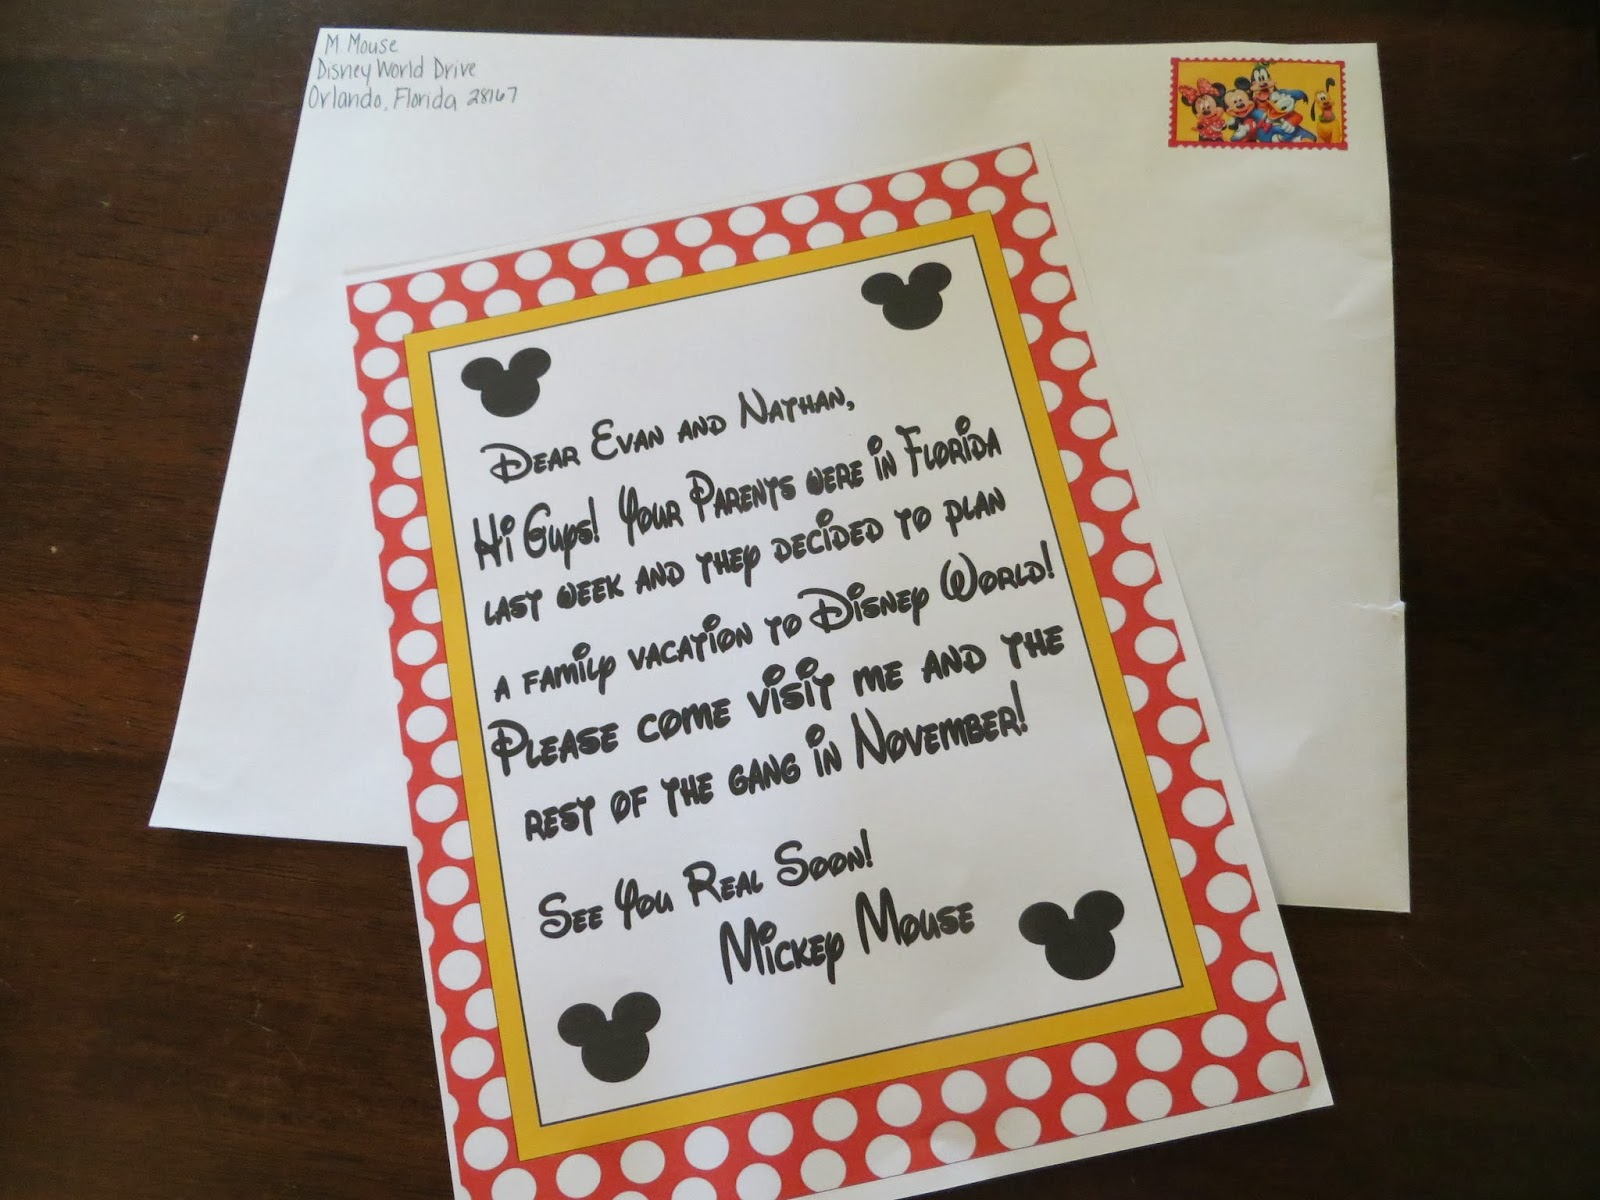 Two Magical Moms Invitation to Disney World